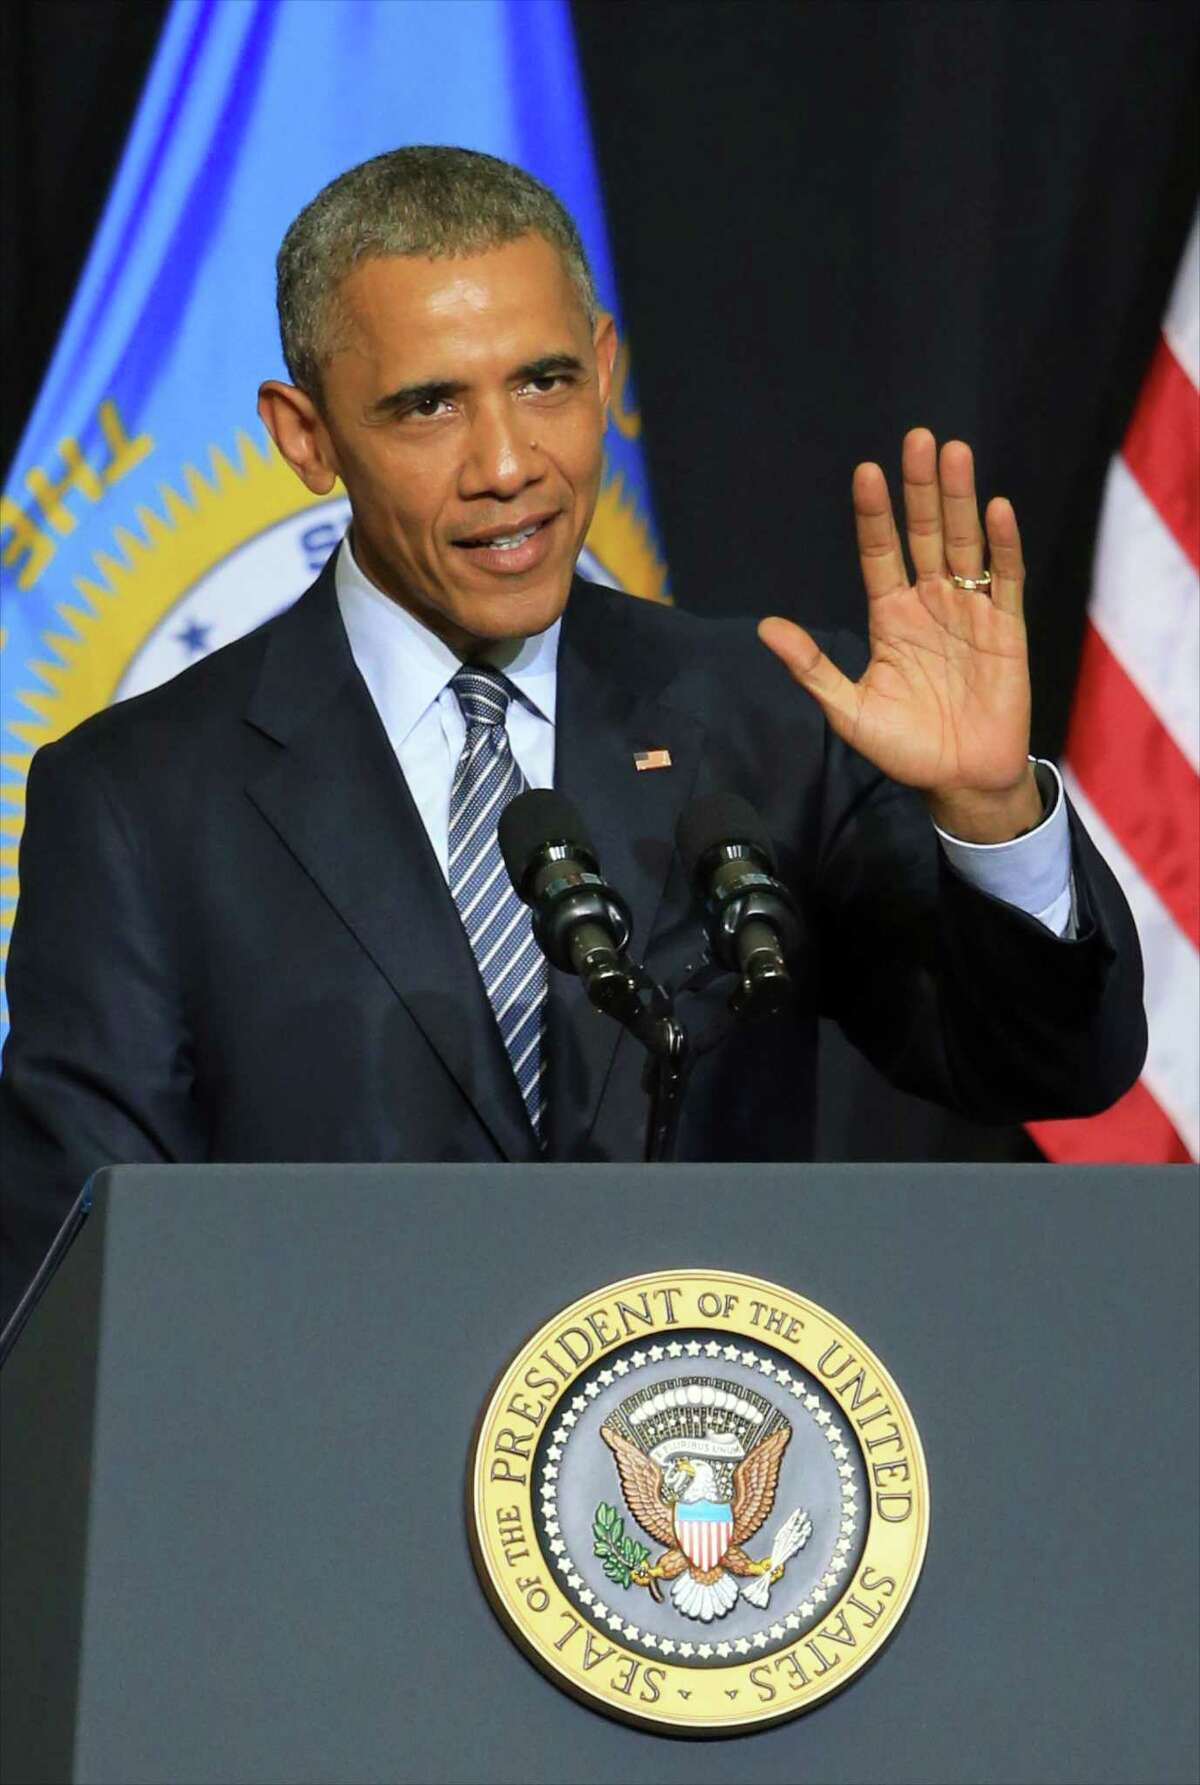 President Barack Obama delivers the commencement address to the 2015 graduating class of Lake Area Technical Institute, in Watertown, S.D. on May 8, 2015.